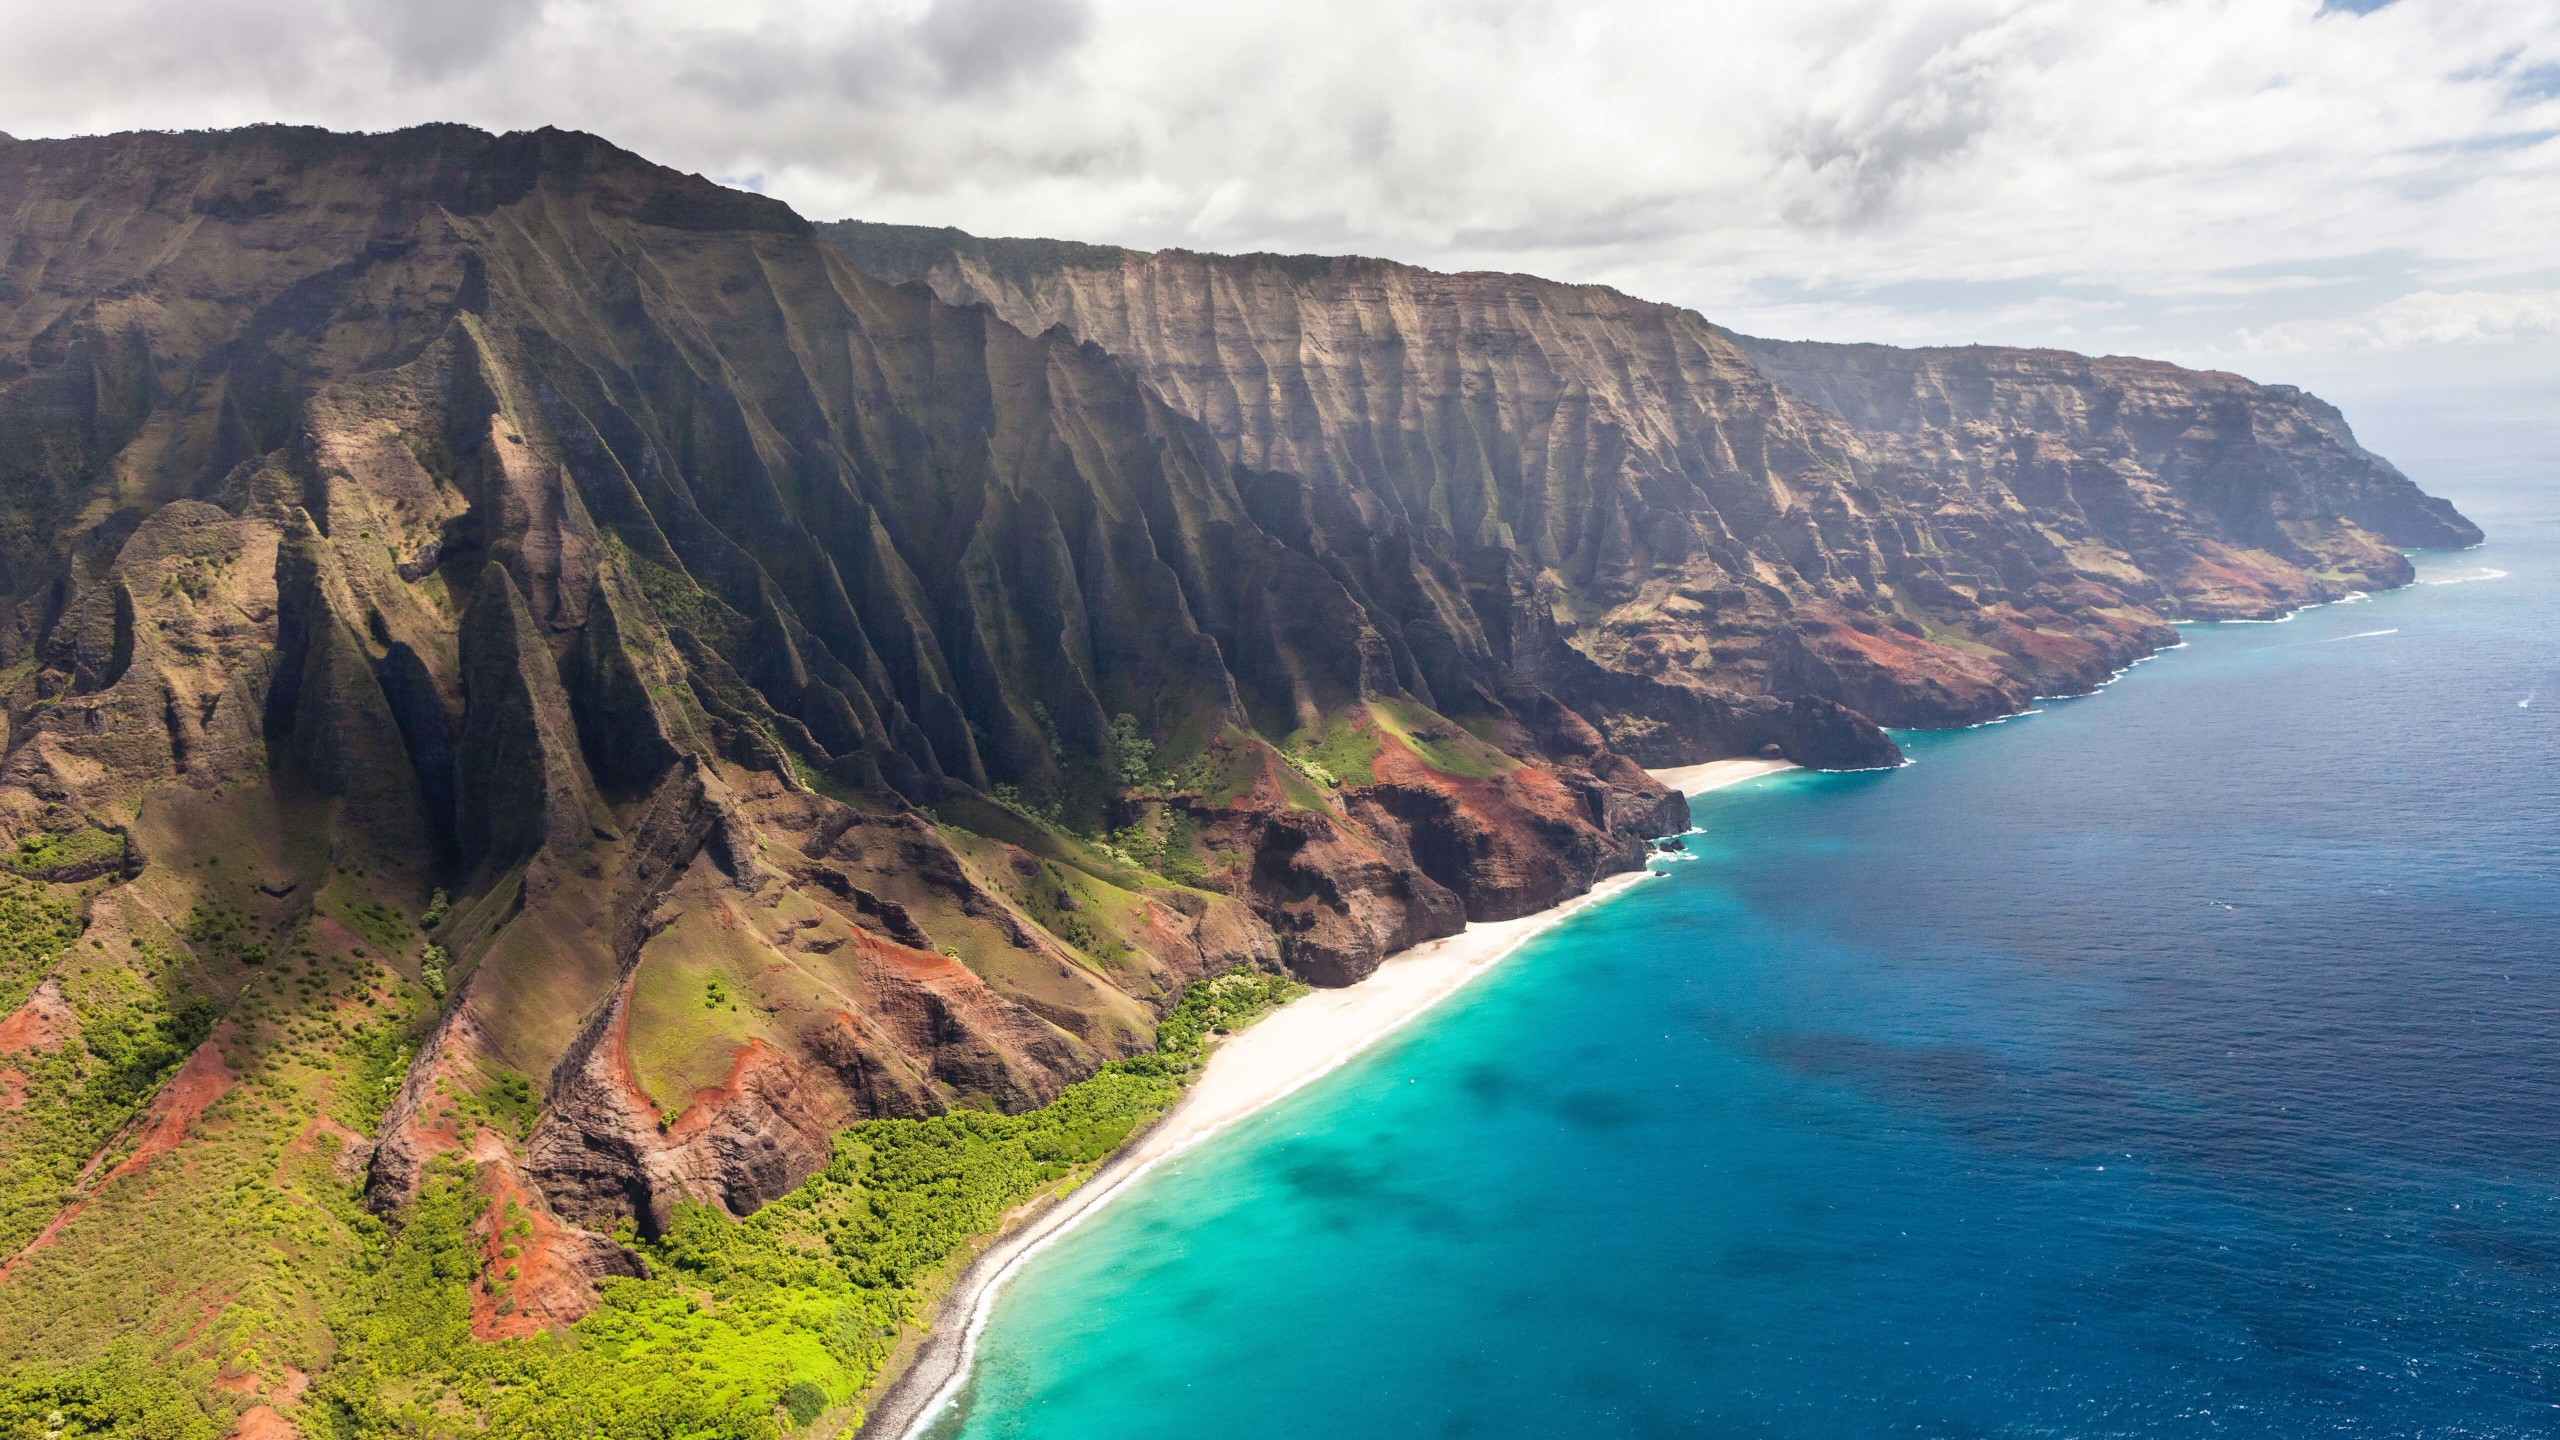 Na Pali Coast Wallpaper for Social Media YouTube Channel Art